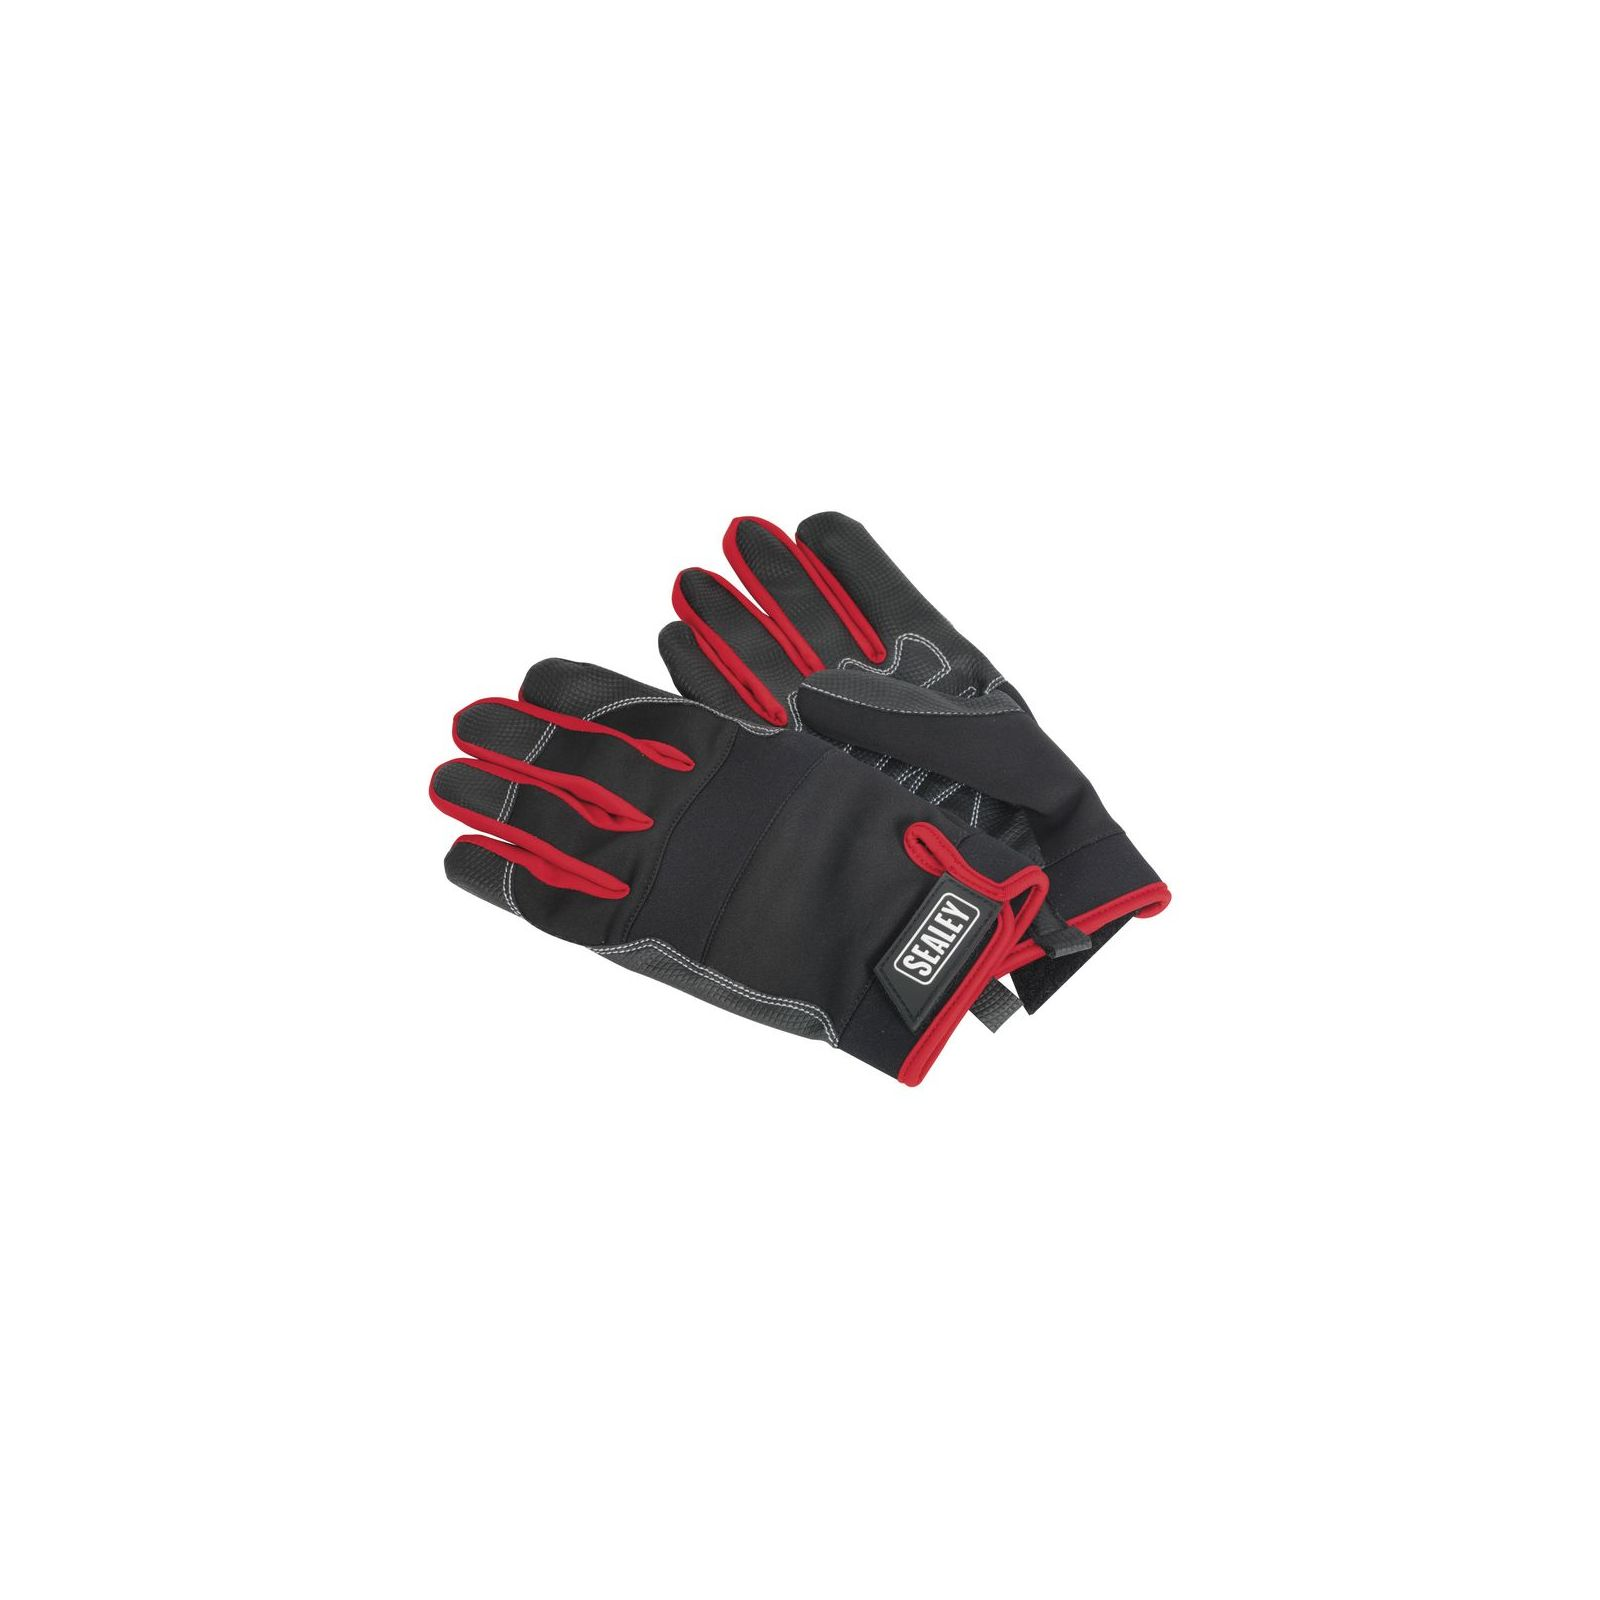 Sealey Mechanic S Gloves Light Palm Tactouch Large